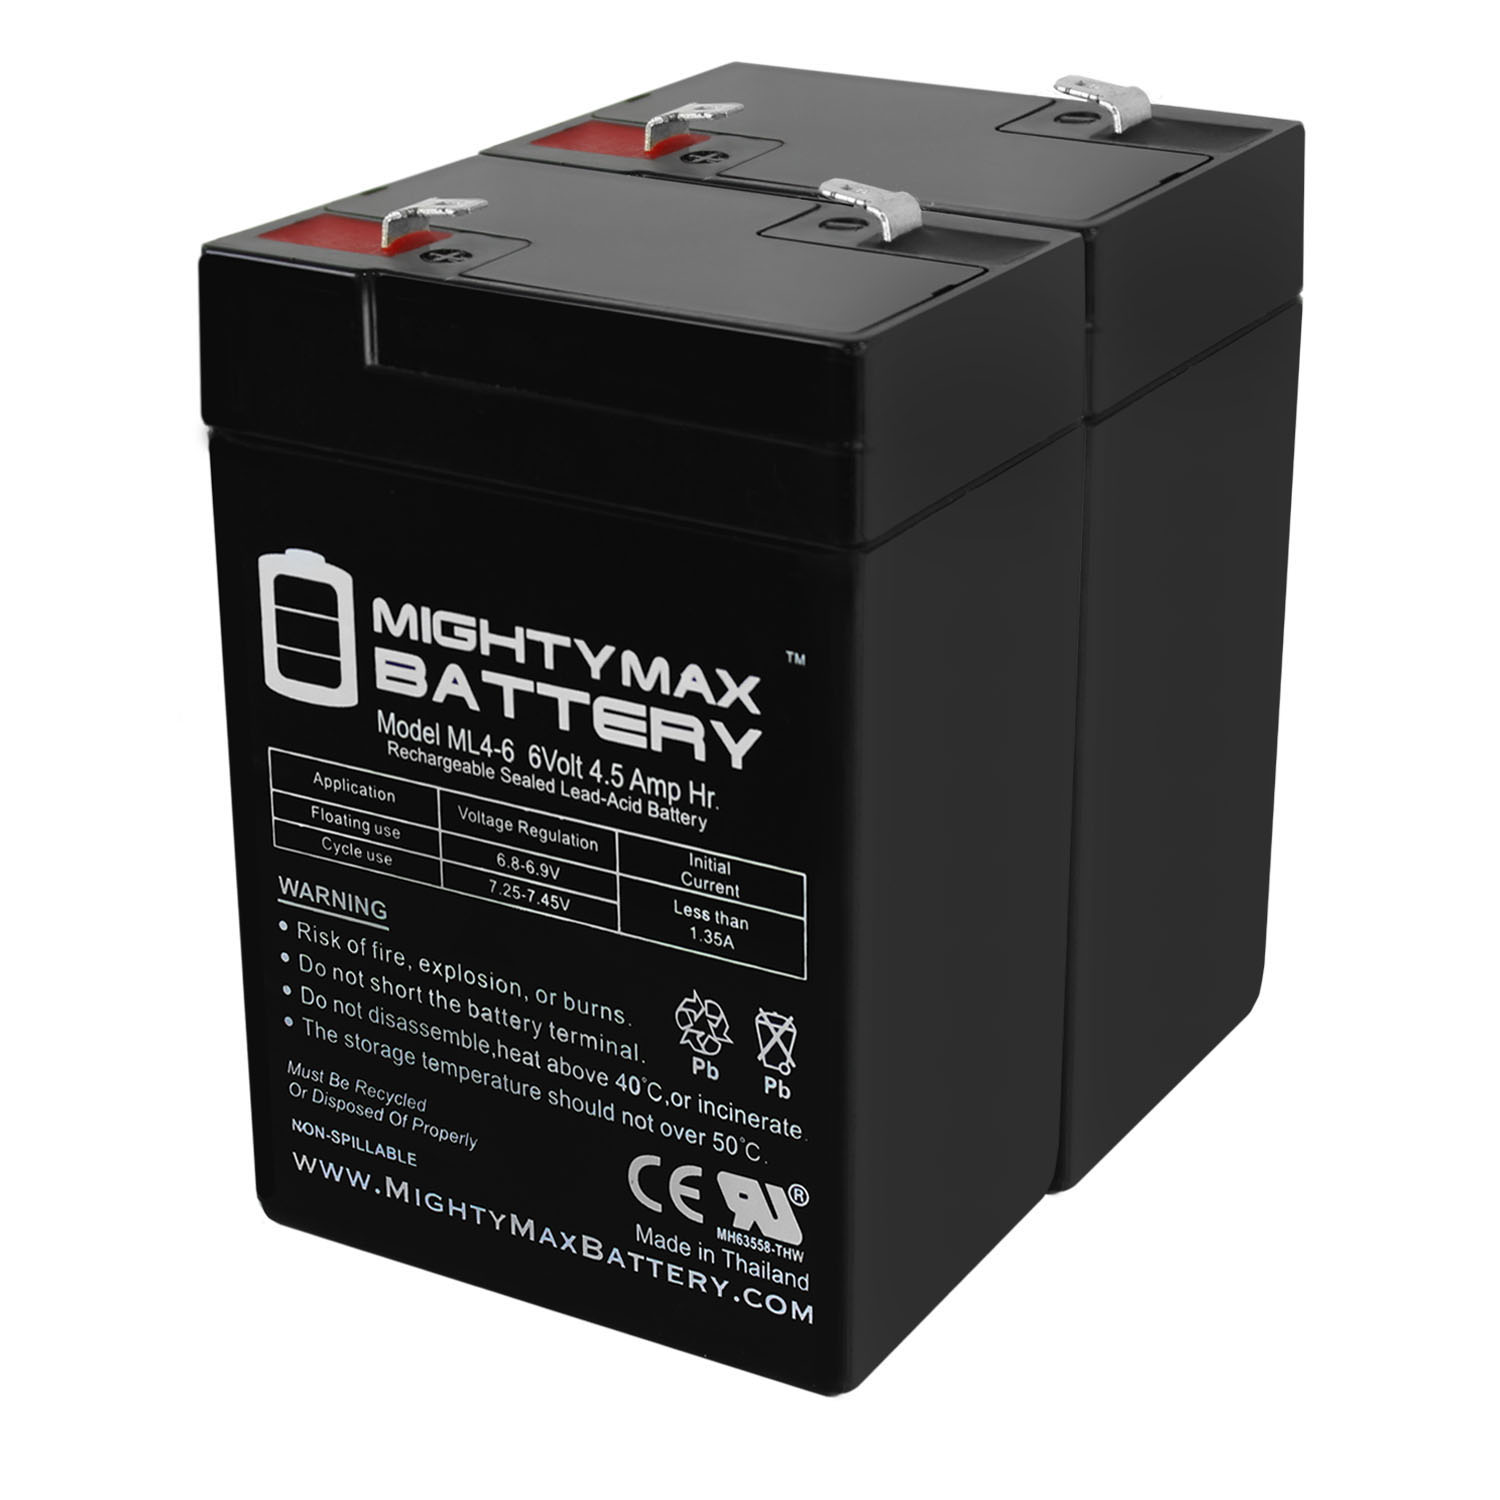 6V 4.5Ah Battery Replacement for APC 370CI - 2 Pack